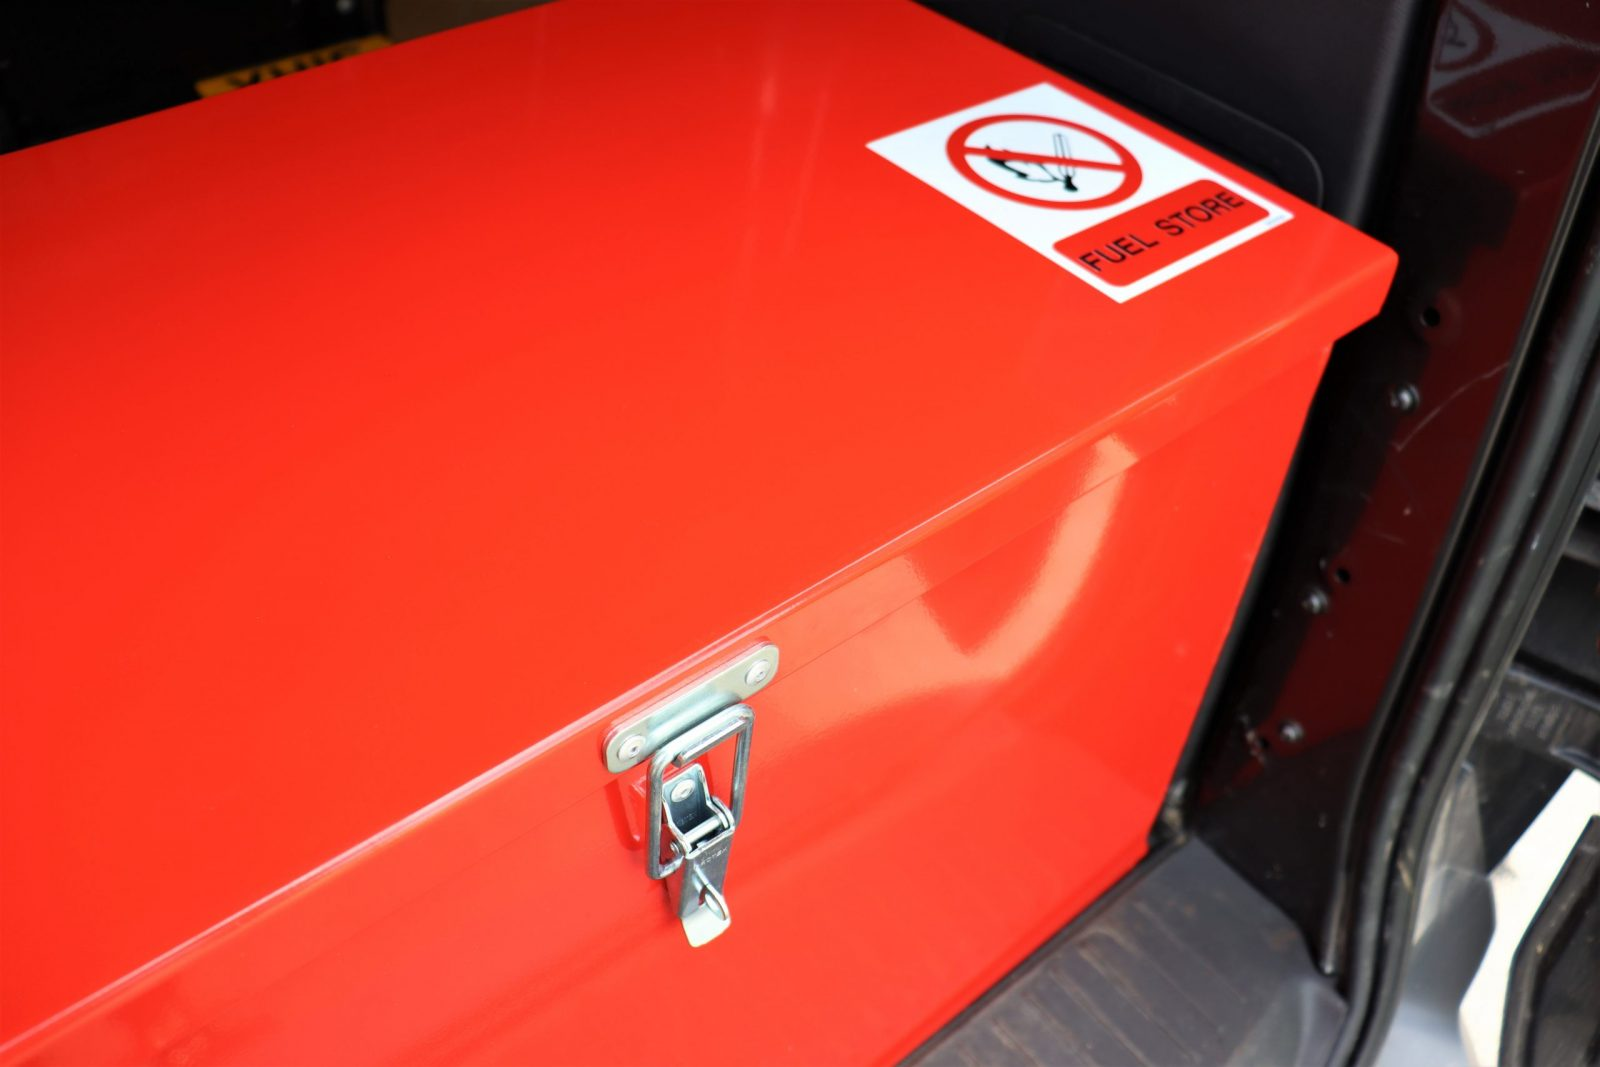 The VFSJC fuel storage box, made by VALE Engineering, is designed specifically for the safe storage of fuel including petrol and diesel